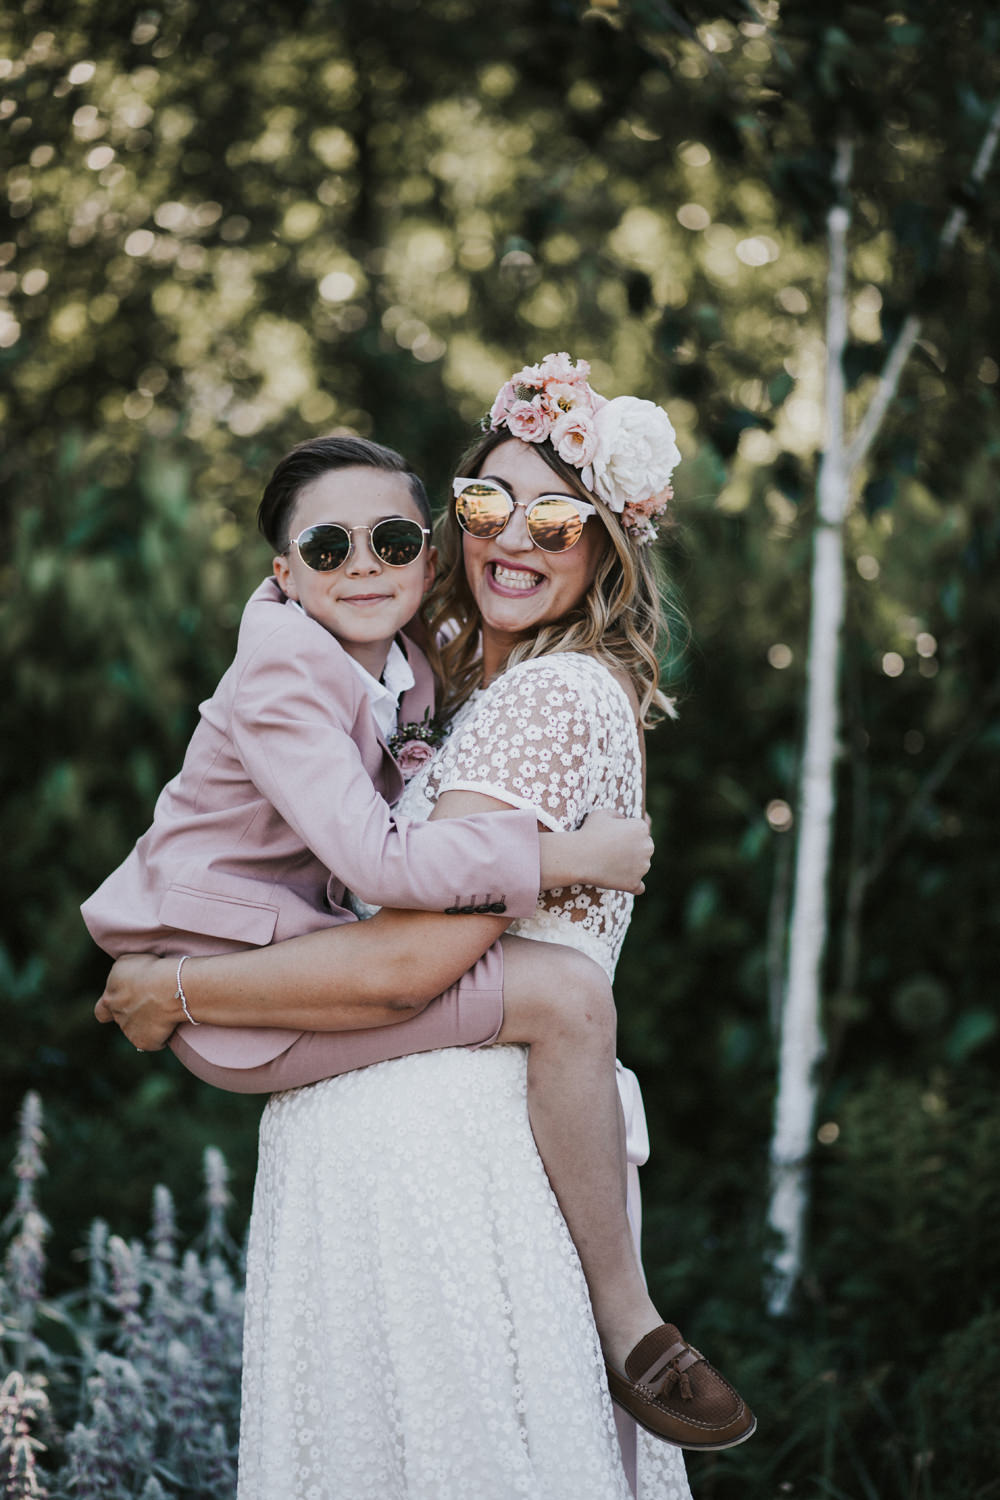 Bride Bridal Flower Crown Lace Sweetheart Neckline Pink Suit Page Boy Sunglasses Tewin Bury Farm Wedding Brook Rose Photography